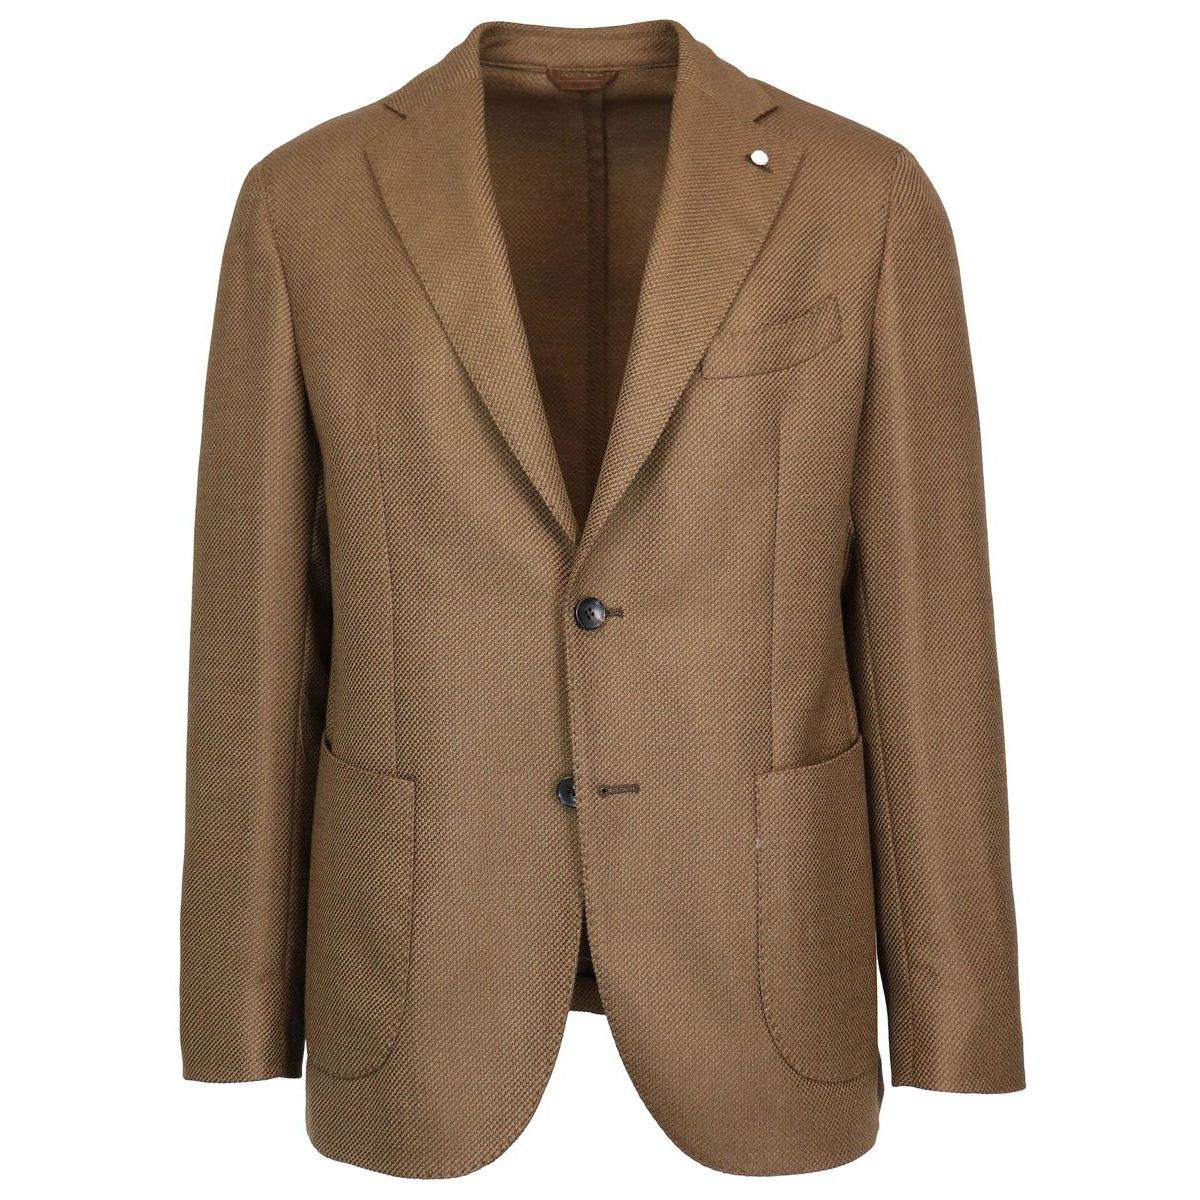 Ten Pockets two-button wool jacket Camel L.B.M. 1911